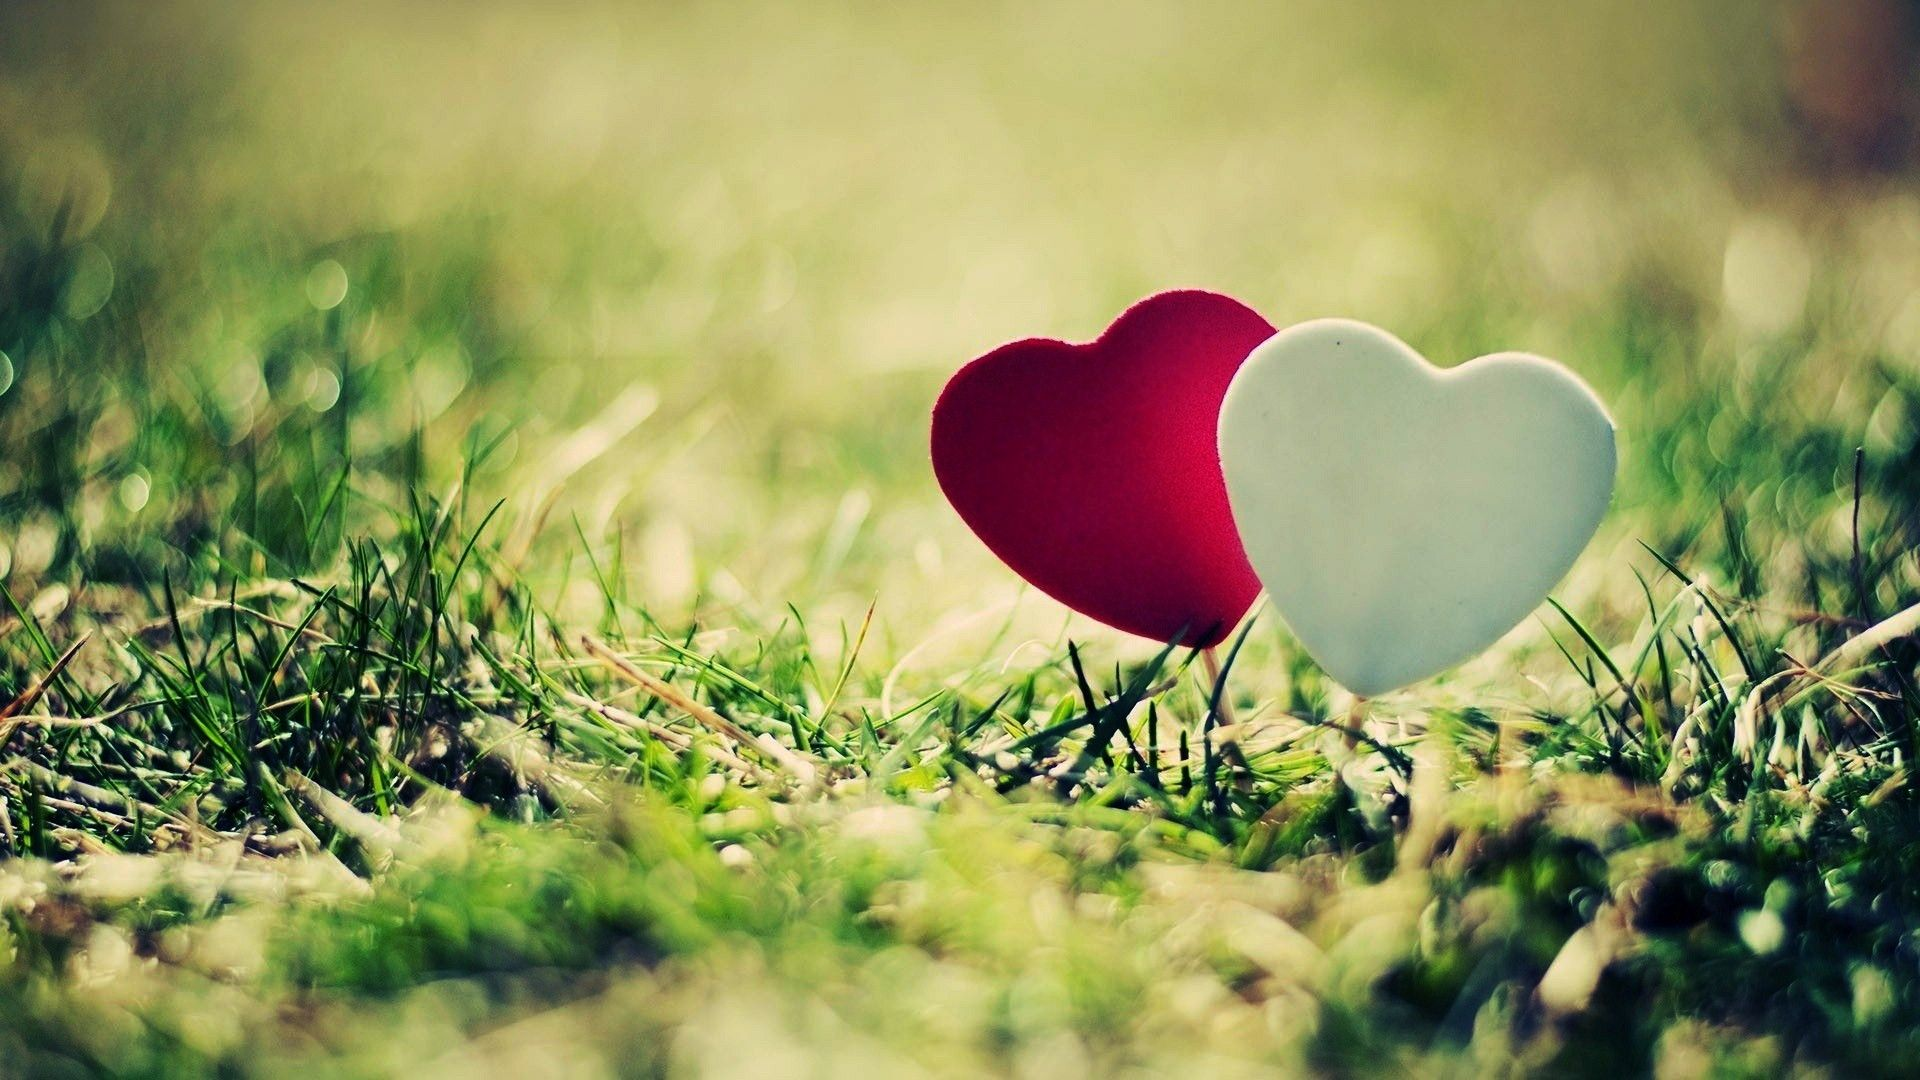 Love Wallpaper Nature : Love and Heart Wallpapers Free Download HD Latest ...